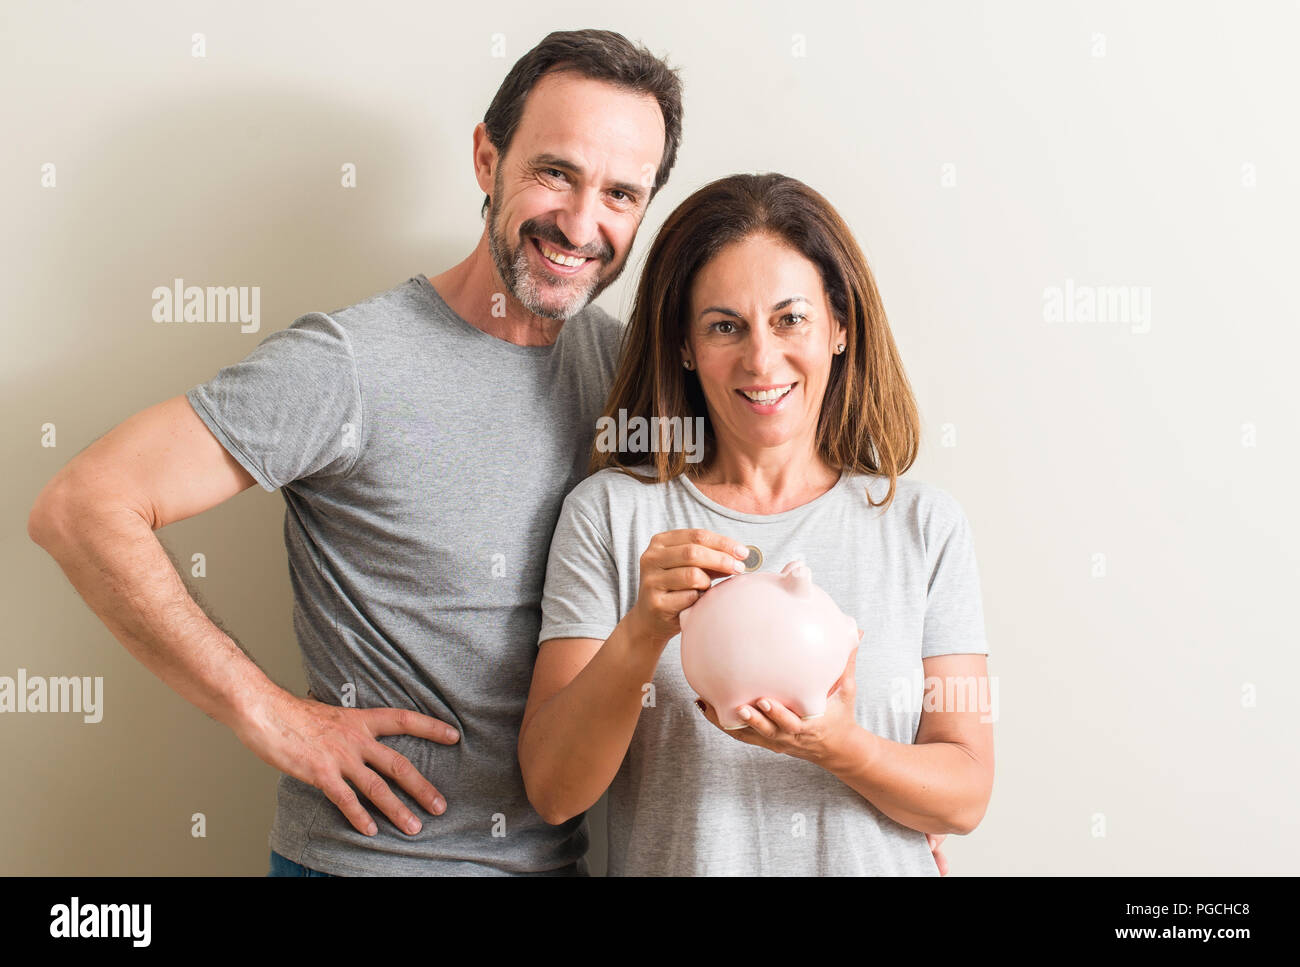 Middle age couple, woman and man, holding piggy bank with a happy face standing and smiling with a confident smile showing teeth - Stock Image